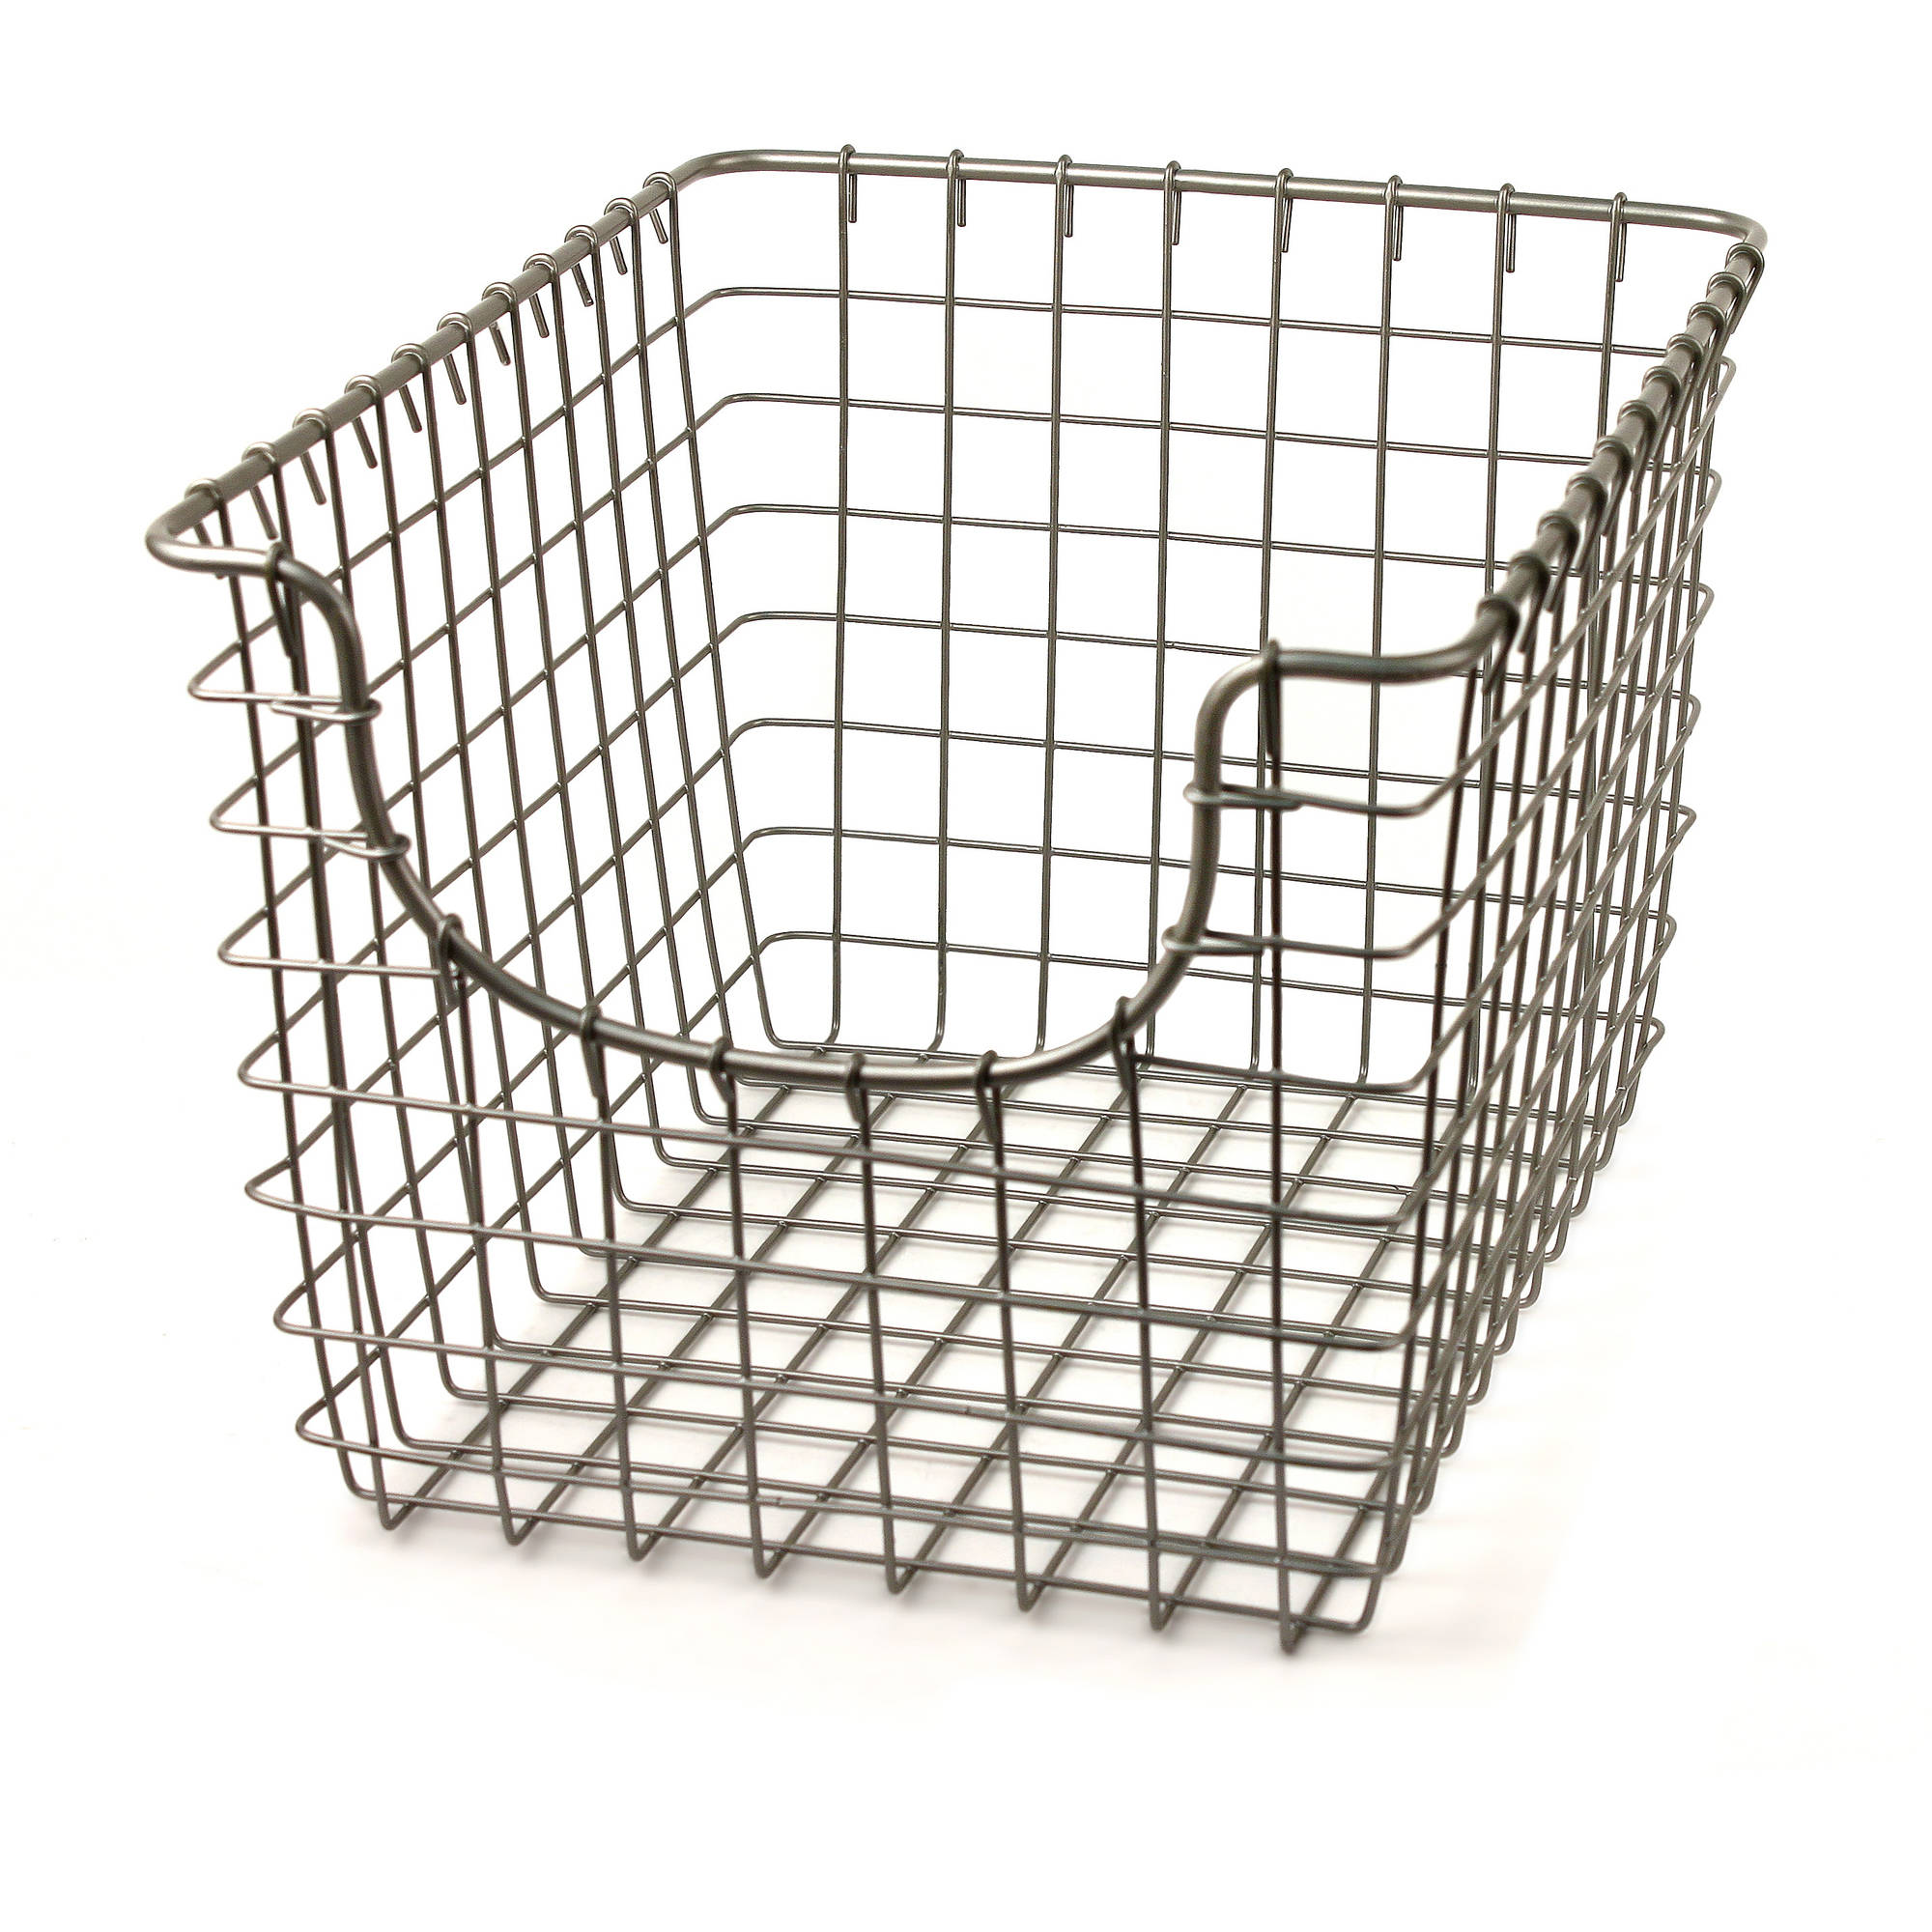 Spectrum Scoop Small Basket, Satin Nickel by Spectrum Diversified Designs Inc